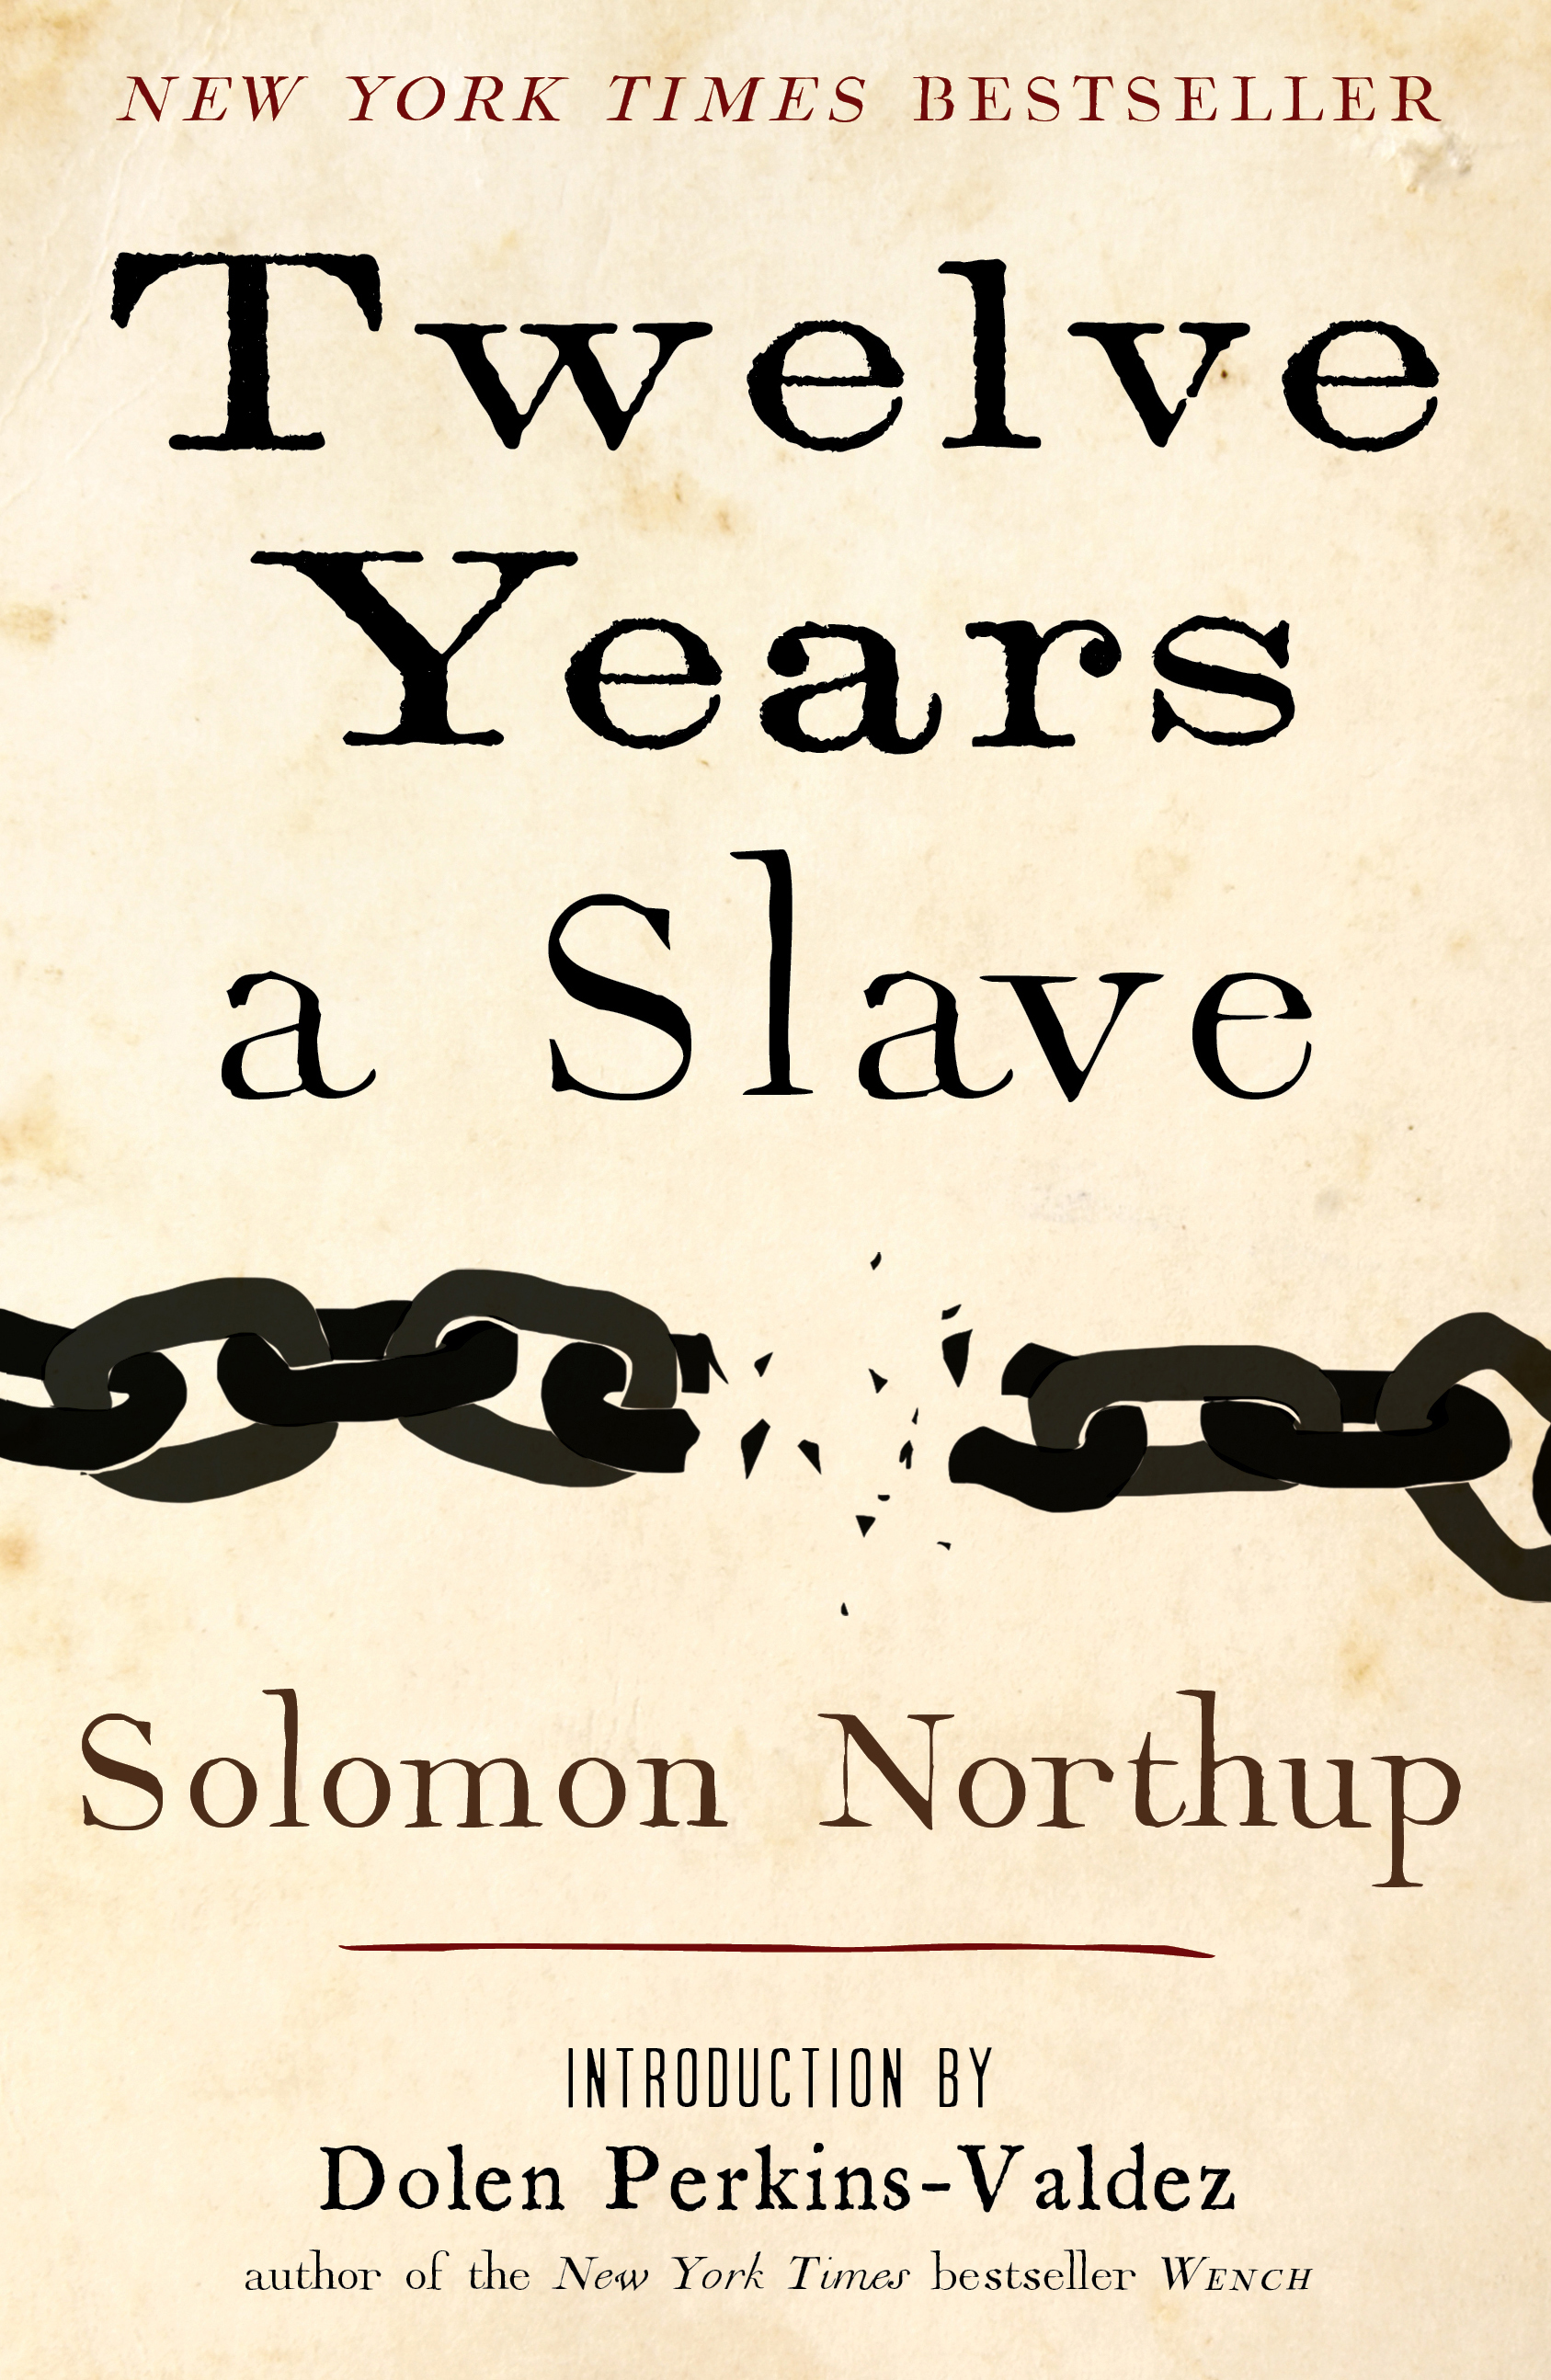 12 Years a Slave: the book behind the film